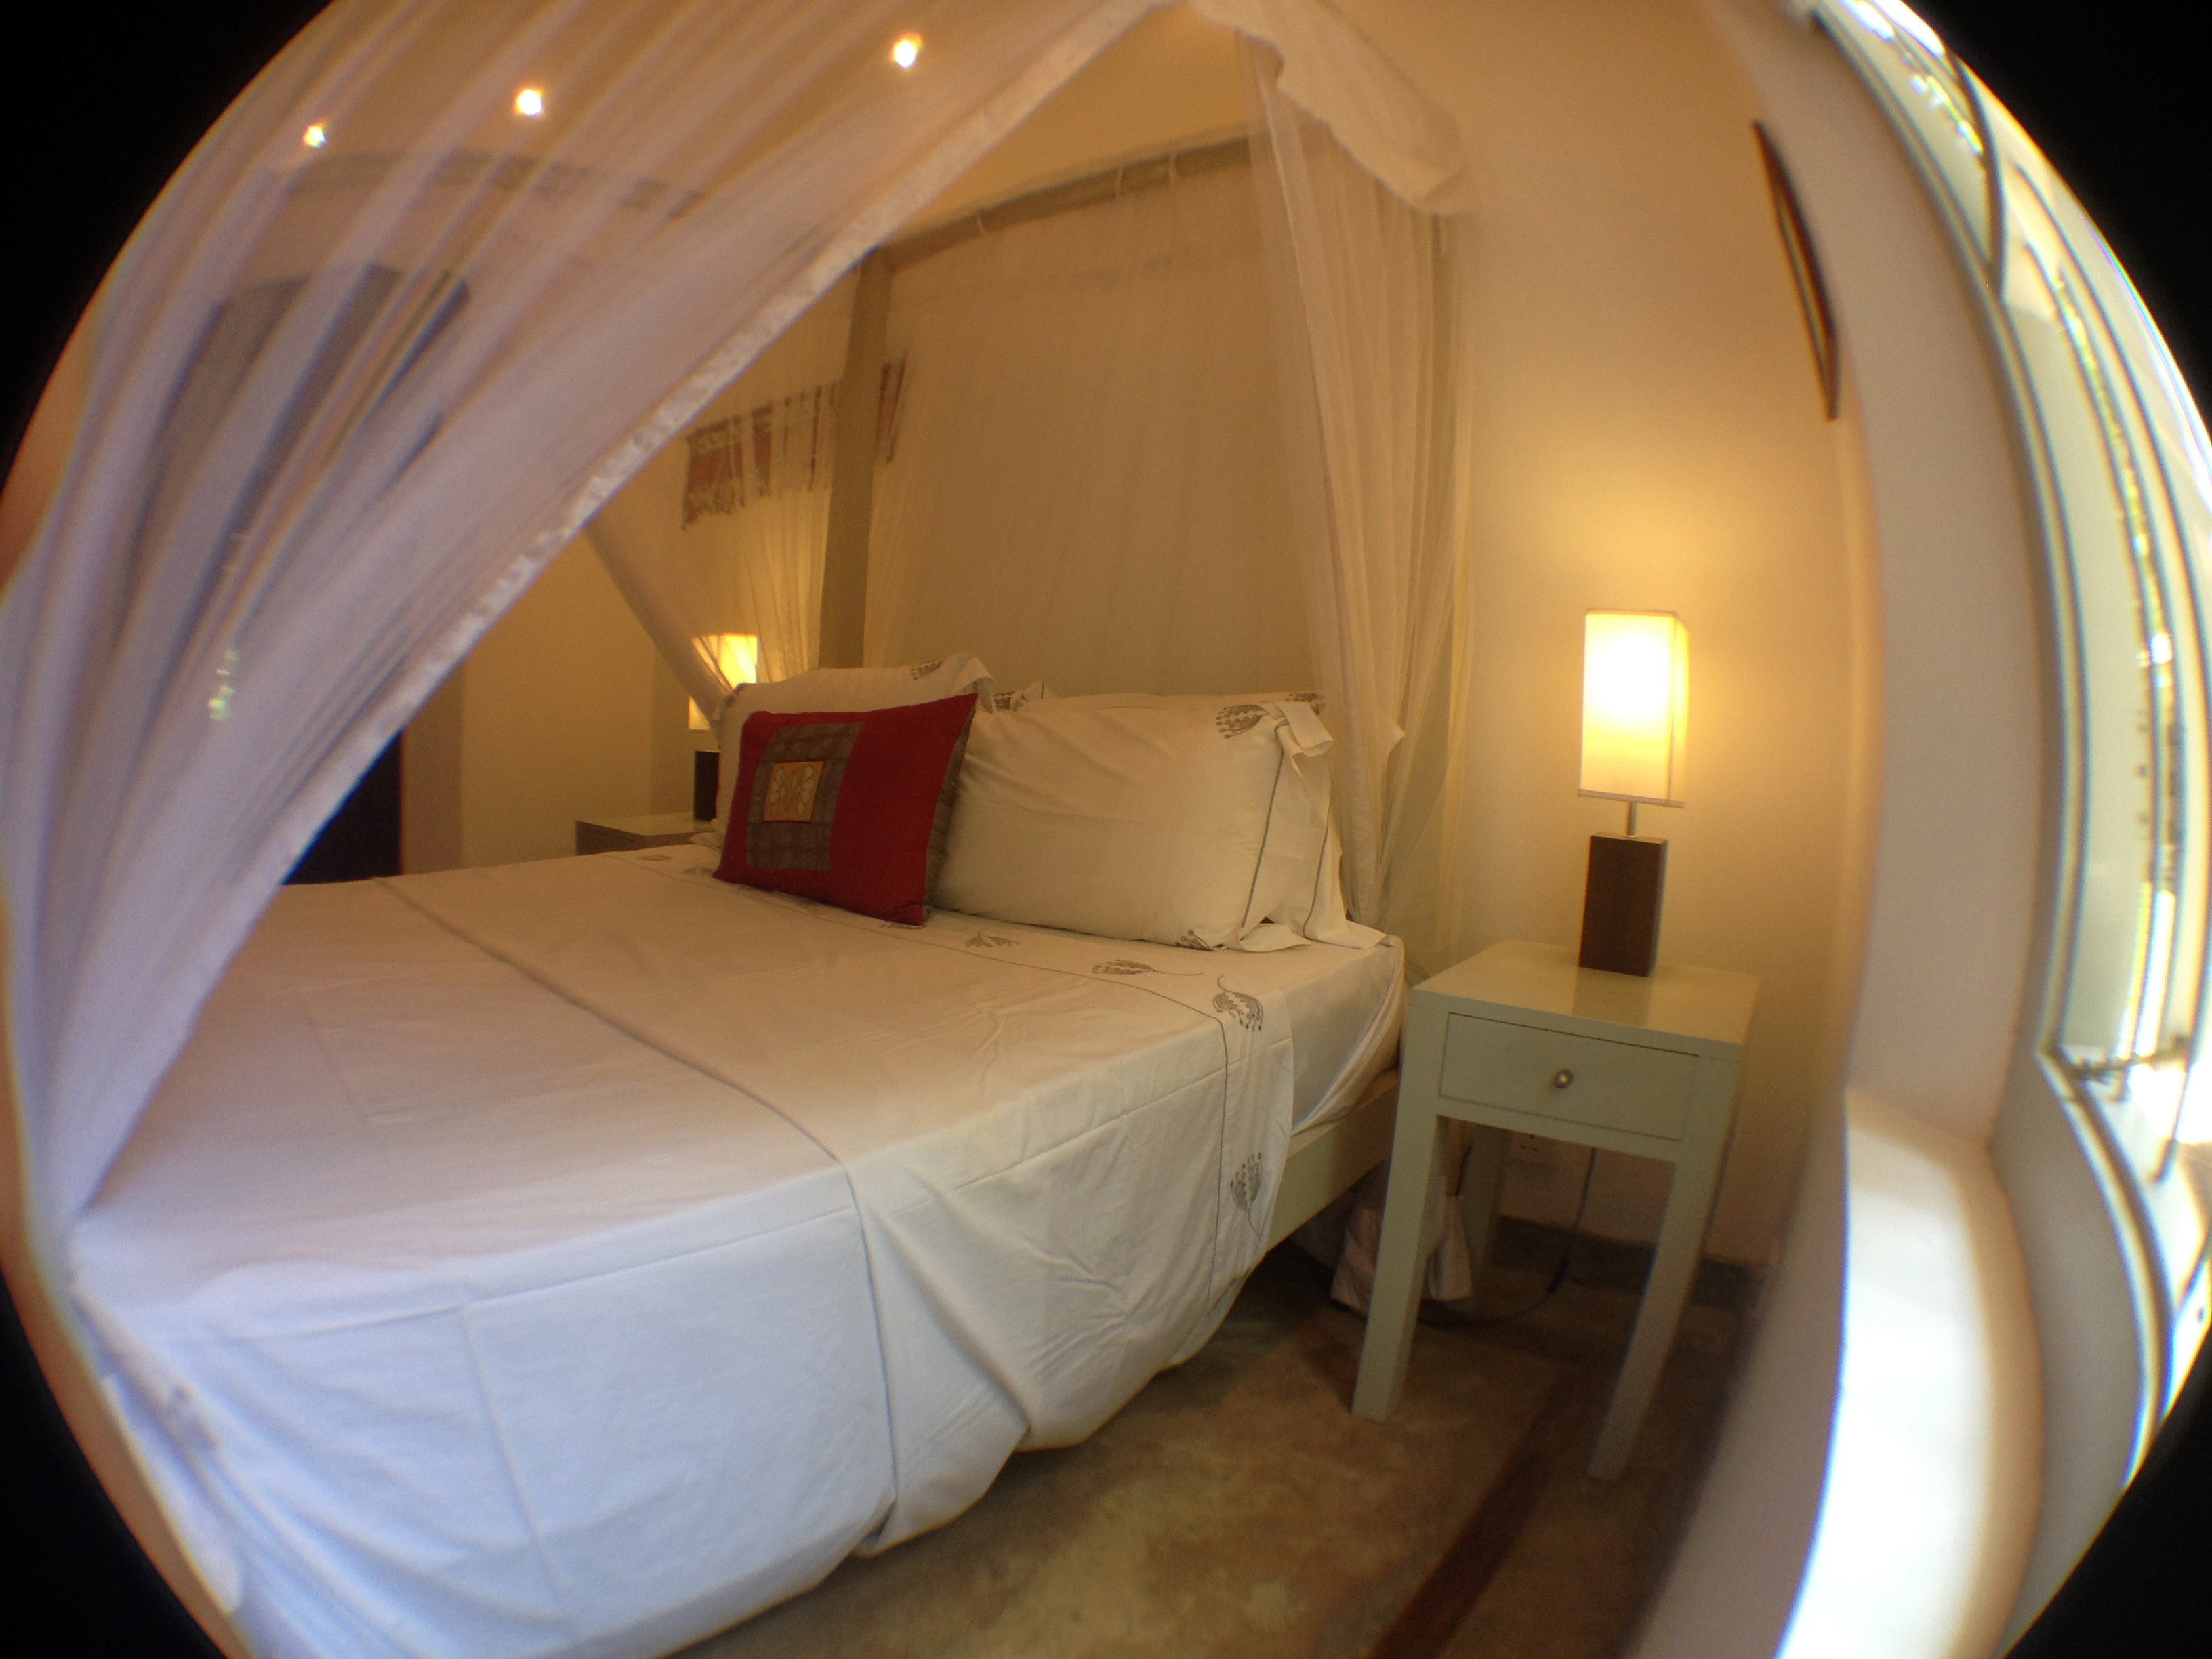 Room features a concrete floor with wooden inlays and a ceiling fan.